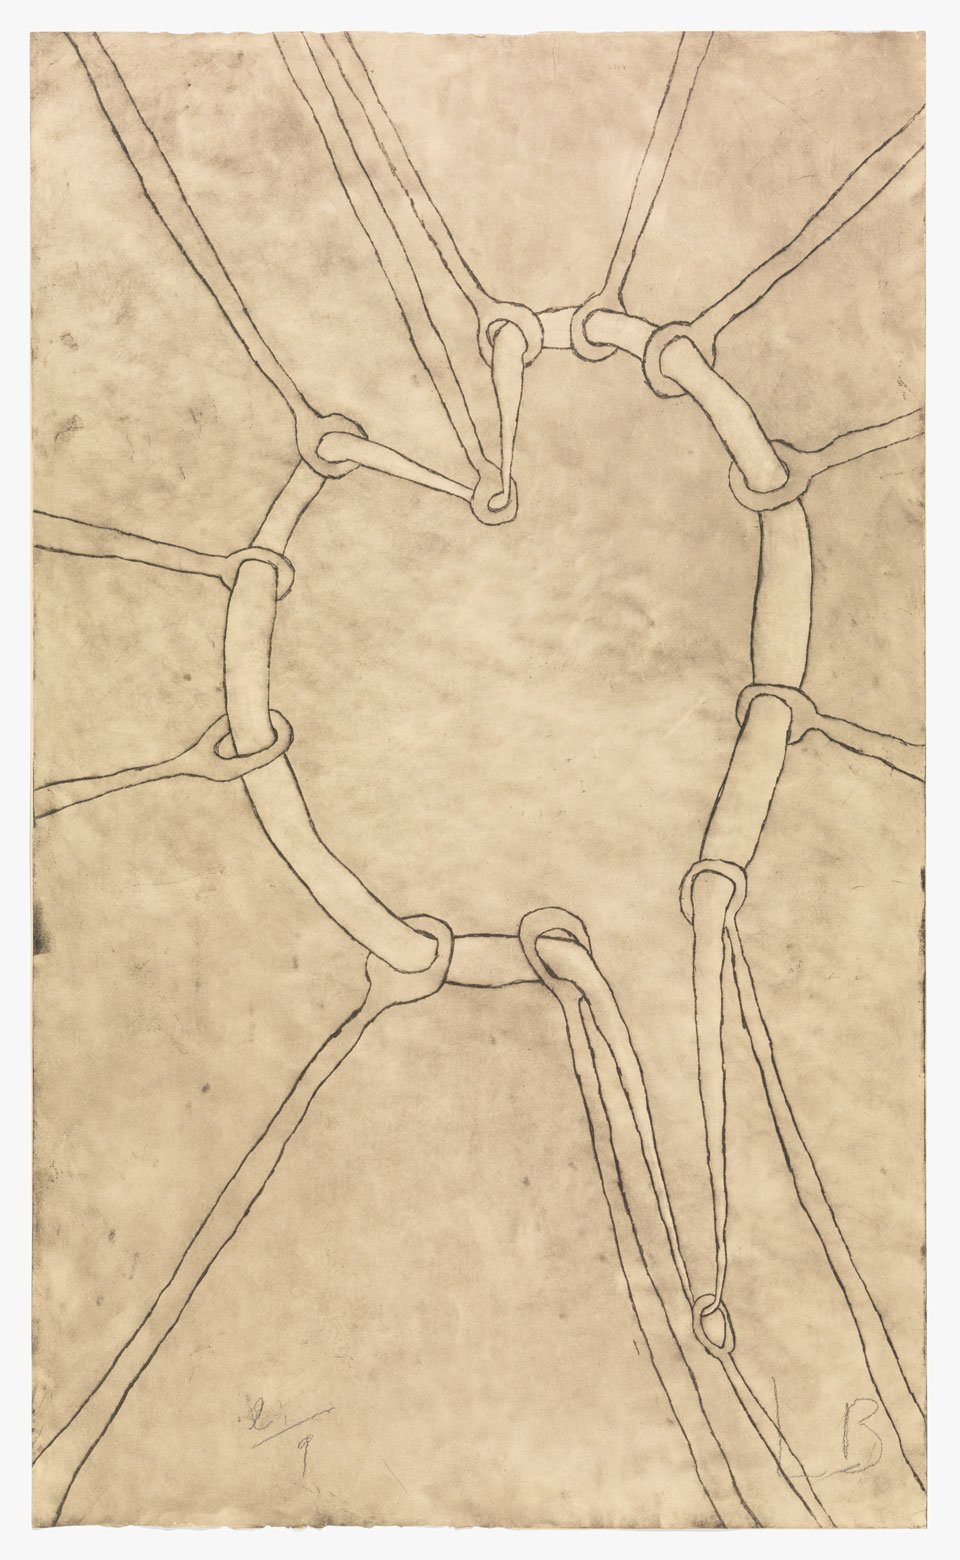 louise bourgeois works on paper tate